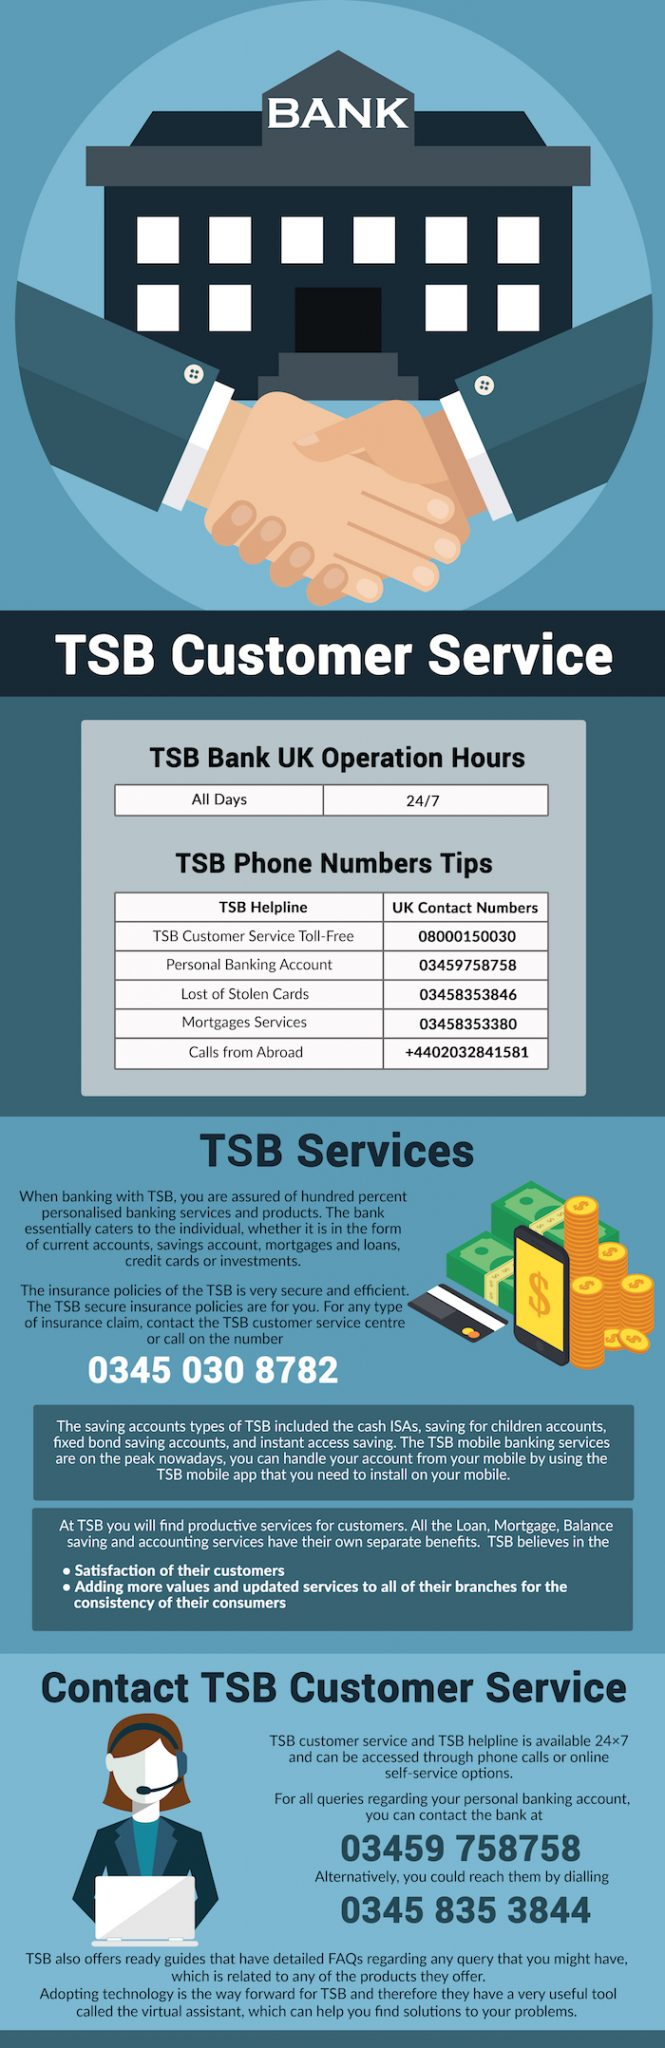 tsb helpline numbers